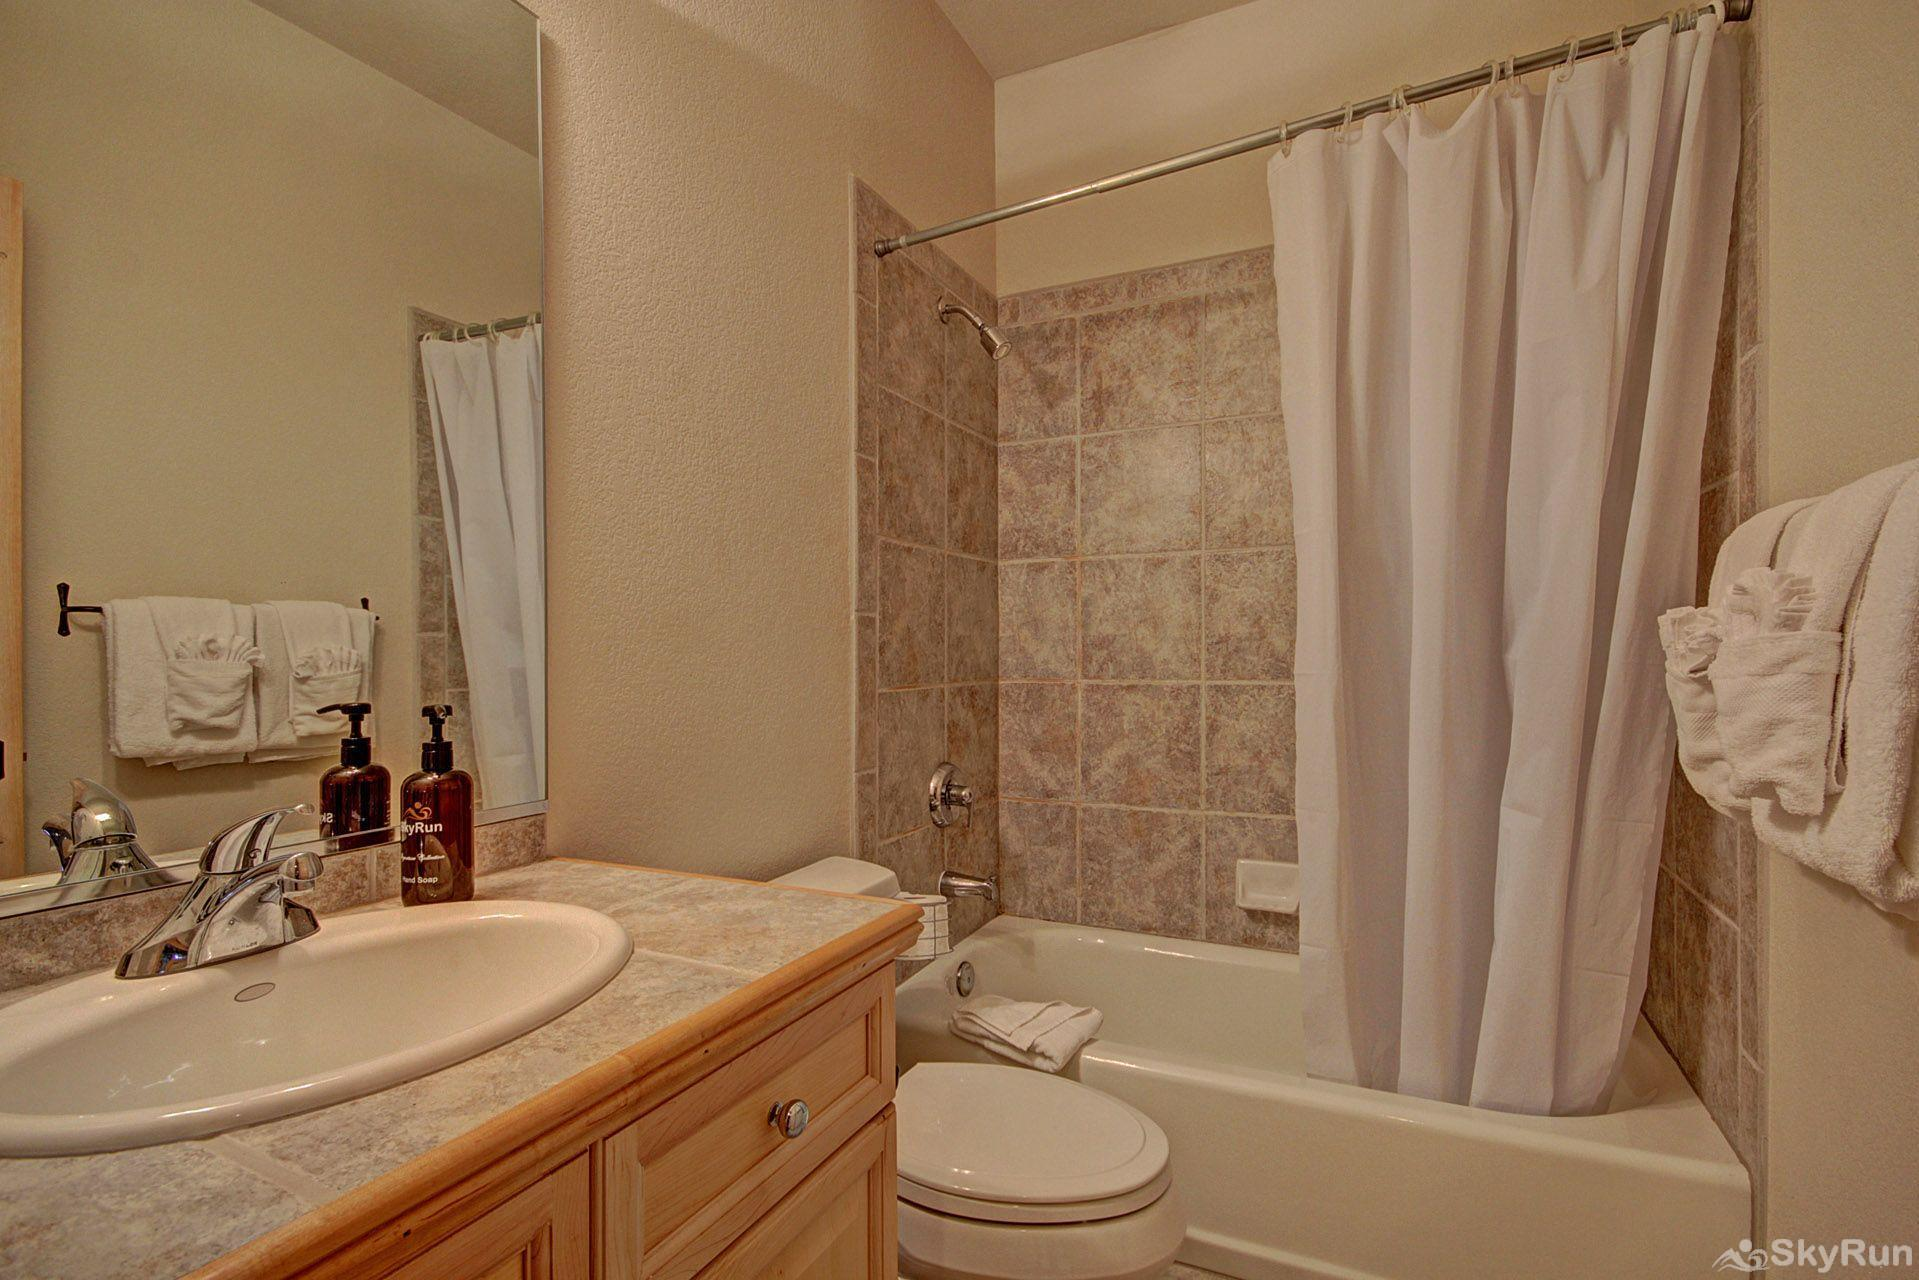 EN402 Ranch at Eagles Nest 3BR 4BA Full bathroom on lower level